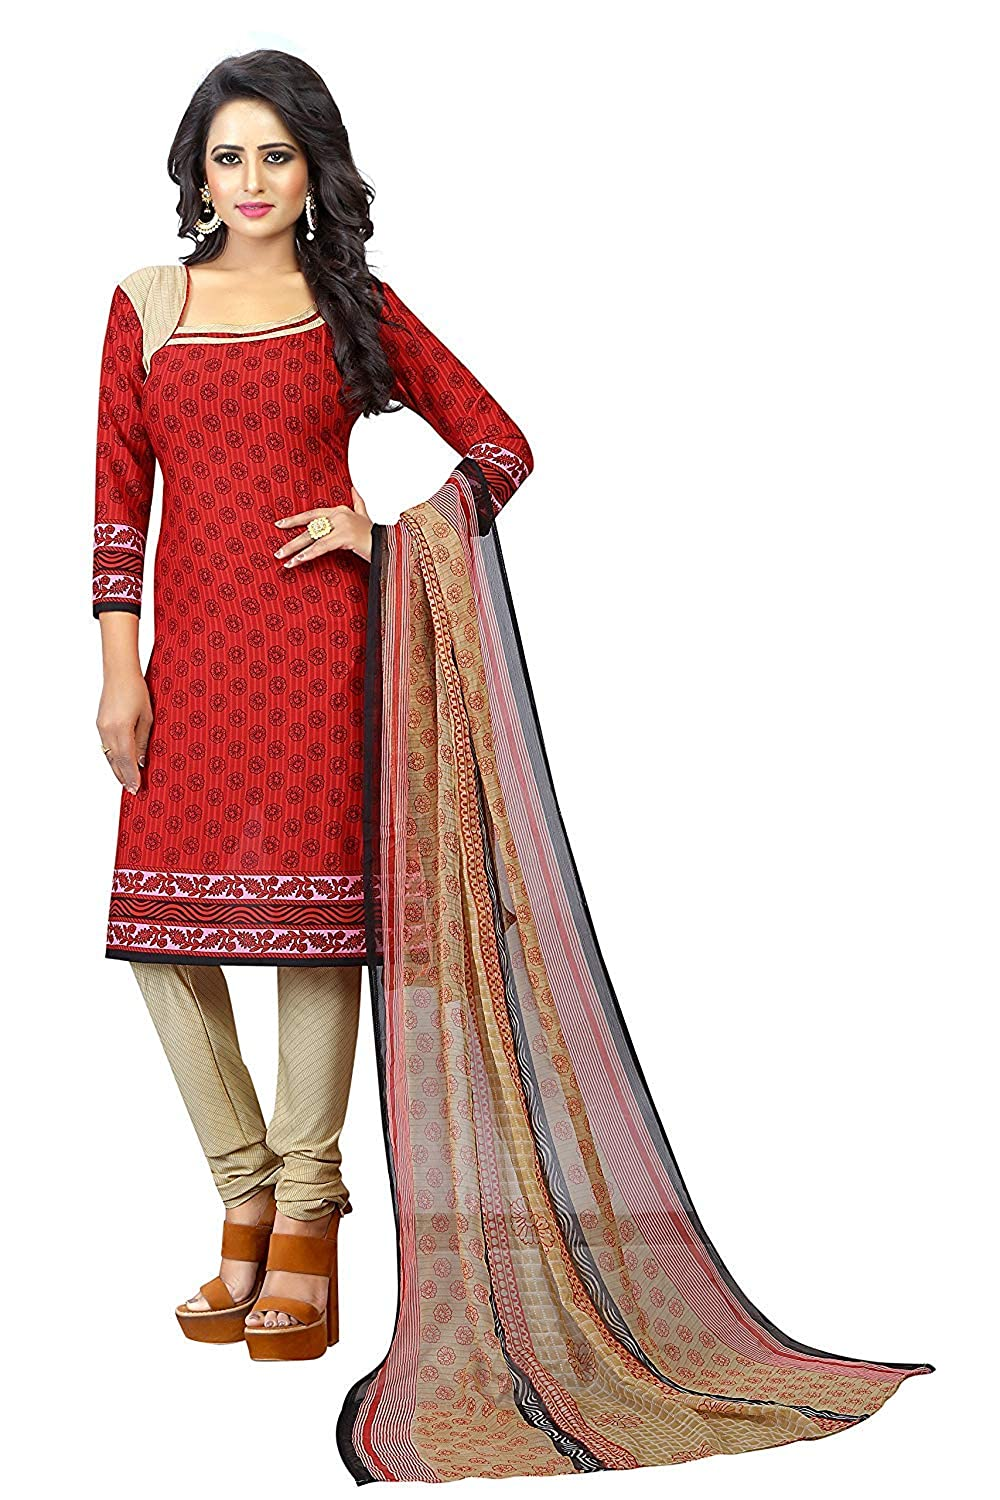 Buy Suit For Women Stylish Below 500 Unstitched Cloveo Salwar Suit